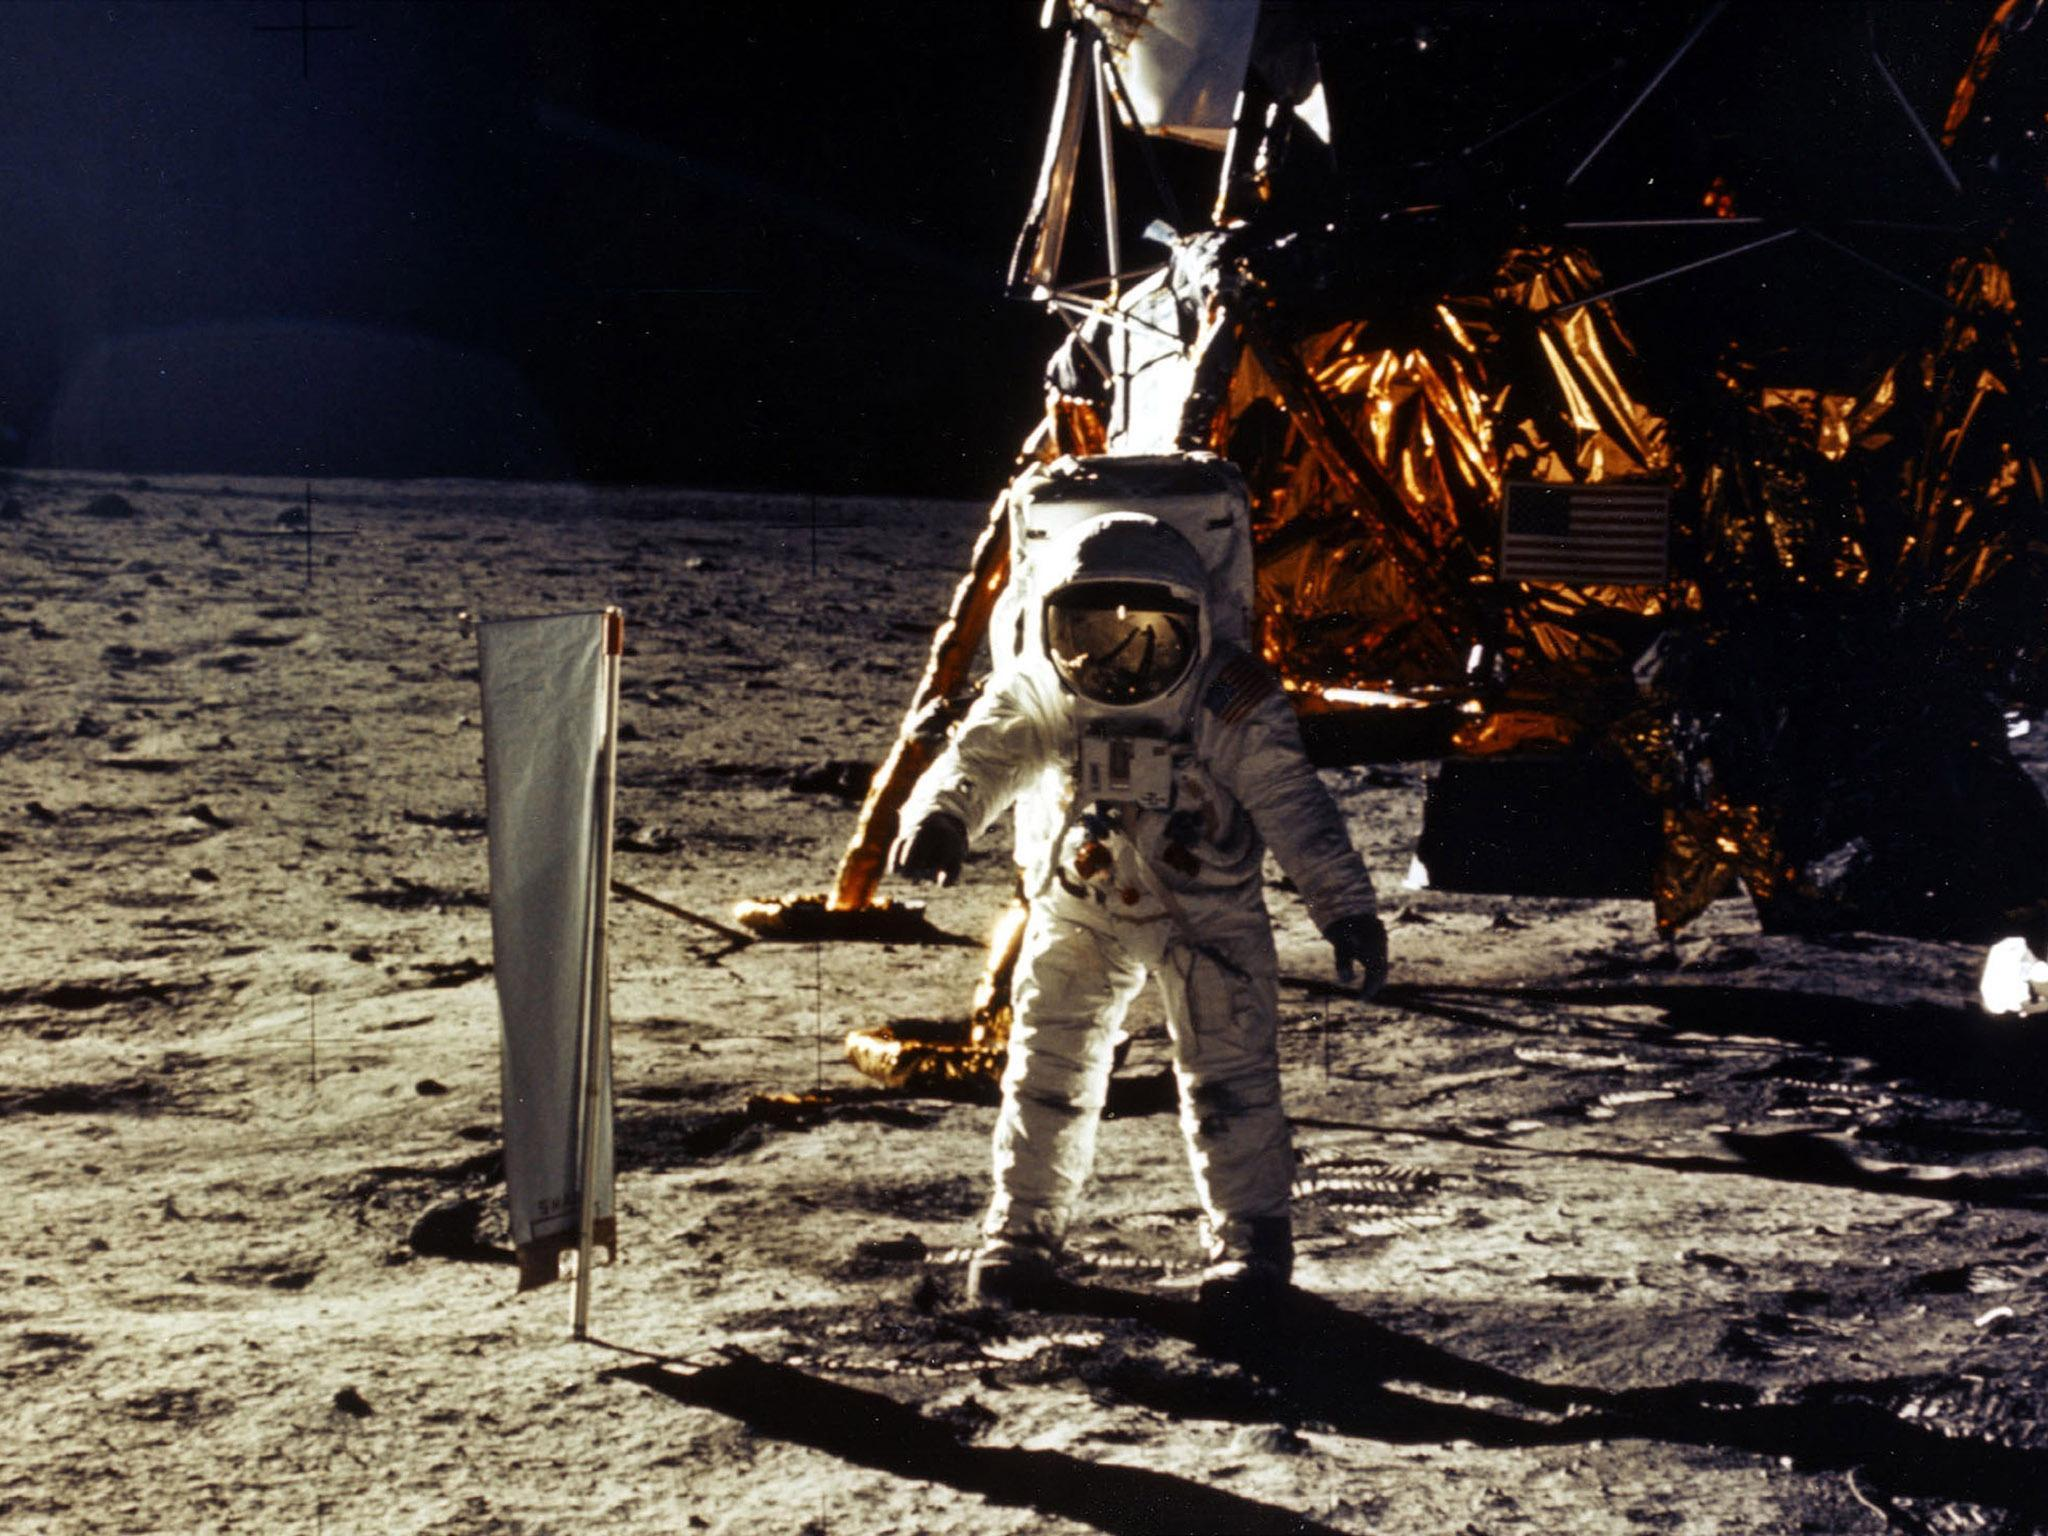 "This weekend marks 50 years since astronaut Neil Armstrong became the first person to walk on the lunar surface.The landing craft carrying the Apollo 11 Commander and fellow astronaut Buzz Aldrin touched down on the moon on July 20 1969, before Armstrong stepped out and onto the surface, declaring: ""That's one small step for a man, one giant leap for mankind.""Armstrong made history as he placed his left foot on the moon at 3.56am UK time on July 21, making him the first human to ever step on anything that has not existed on or originated from the Earth.Aldrin followed a few moments later, as their colleague Michael Collins waited in the command module in orbit around the moon.As the world marvelled 50 years ago, interest in the moon remains high today with ambitions to return after the last Apollo mission in 1972.US vice president Mike Pence has told Nasa that president Donald Trump wants astronauts back on the moon within five years, while multinational plans are in the works for a new space station around it.The UK Space Agency is bidding to play a part in the communication and refuelling elements of the proposed Lunar Orbital Platform - Gateway, a future outpost intended to serve as a laboratory and short-term accommodation post for astronauts exploring the moon.Collins, who attended a celebration at Kennedy Space Centre's Launch Complex 39A in Florida on Tuesday, described it as a ""wonderful feeling"" to be back at the spot where the Saturn V rocket blasted the trio off into space.""Apollo 11 ... was serious business,"" he said.""We, crew, felt the weight of the world on our shoulders. We knew that everyone would be looking at us, friend or foe, and we wanted to do the best we possibly could.""For much of the week, people from all walks of life have been sharing their own memories of Apollo 11, but interest has not stopped at those able to witness the historic feat, with events carried out across the globe.According to a survey by Lego of 1,000 children aged between eight and 12, 90% want to learn more about space, while 87% were able to correctly identify Armstrong as the first person to walk on the moon.Professor Mike Cruise, president of the Royal Astronomical Society, said: ""I was a young space scientist when the Apollo 11 spacecraft landed, but the memory of this extraordinary moment has stayed with me throughout my life.""The grand ambitions of the Apollo programme inspired people around the world and the 50th anniversary is a special moment.""It is a time to reflect not only on the heroism of the astronauts and the amazing talents of all those involved in the missions, but to think big once again about exploring space, and the exciting prospects for those considering careers in science.""Agencies contributed to this report."